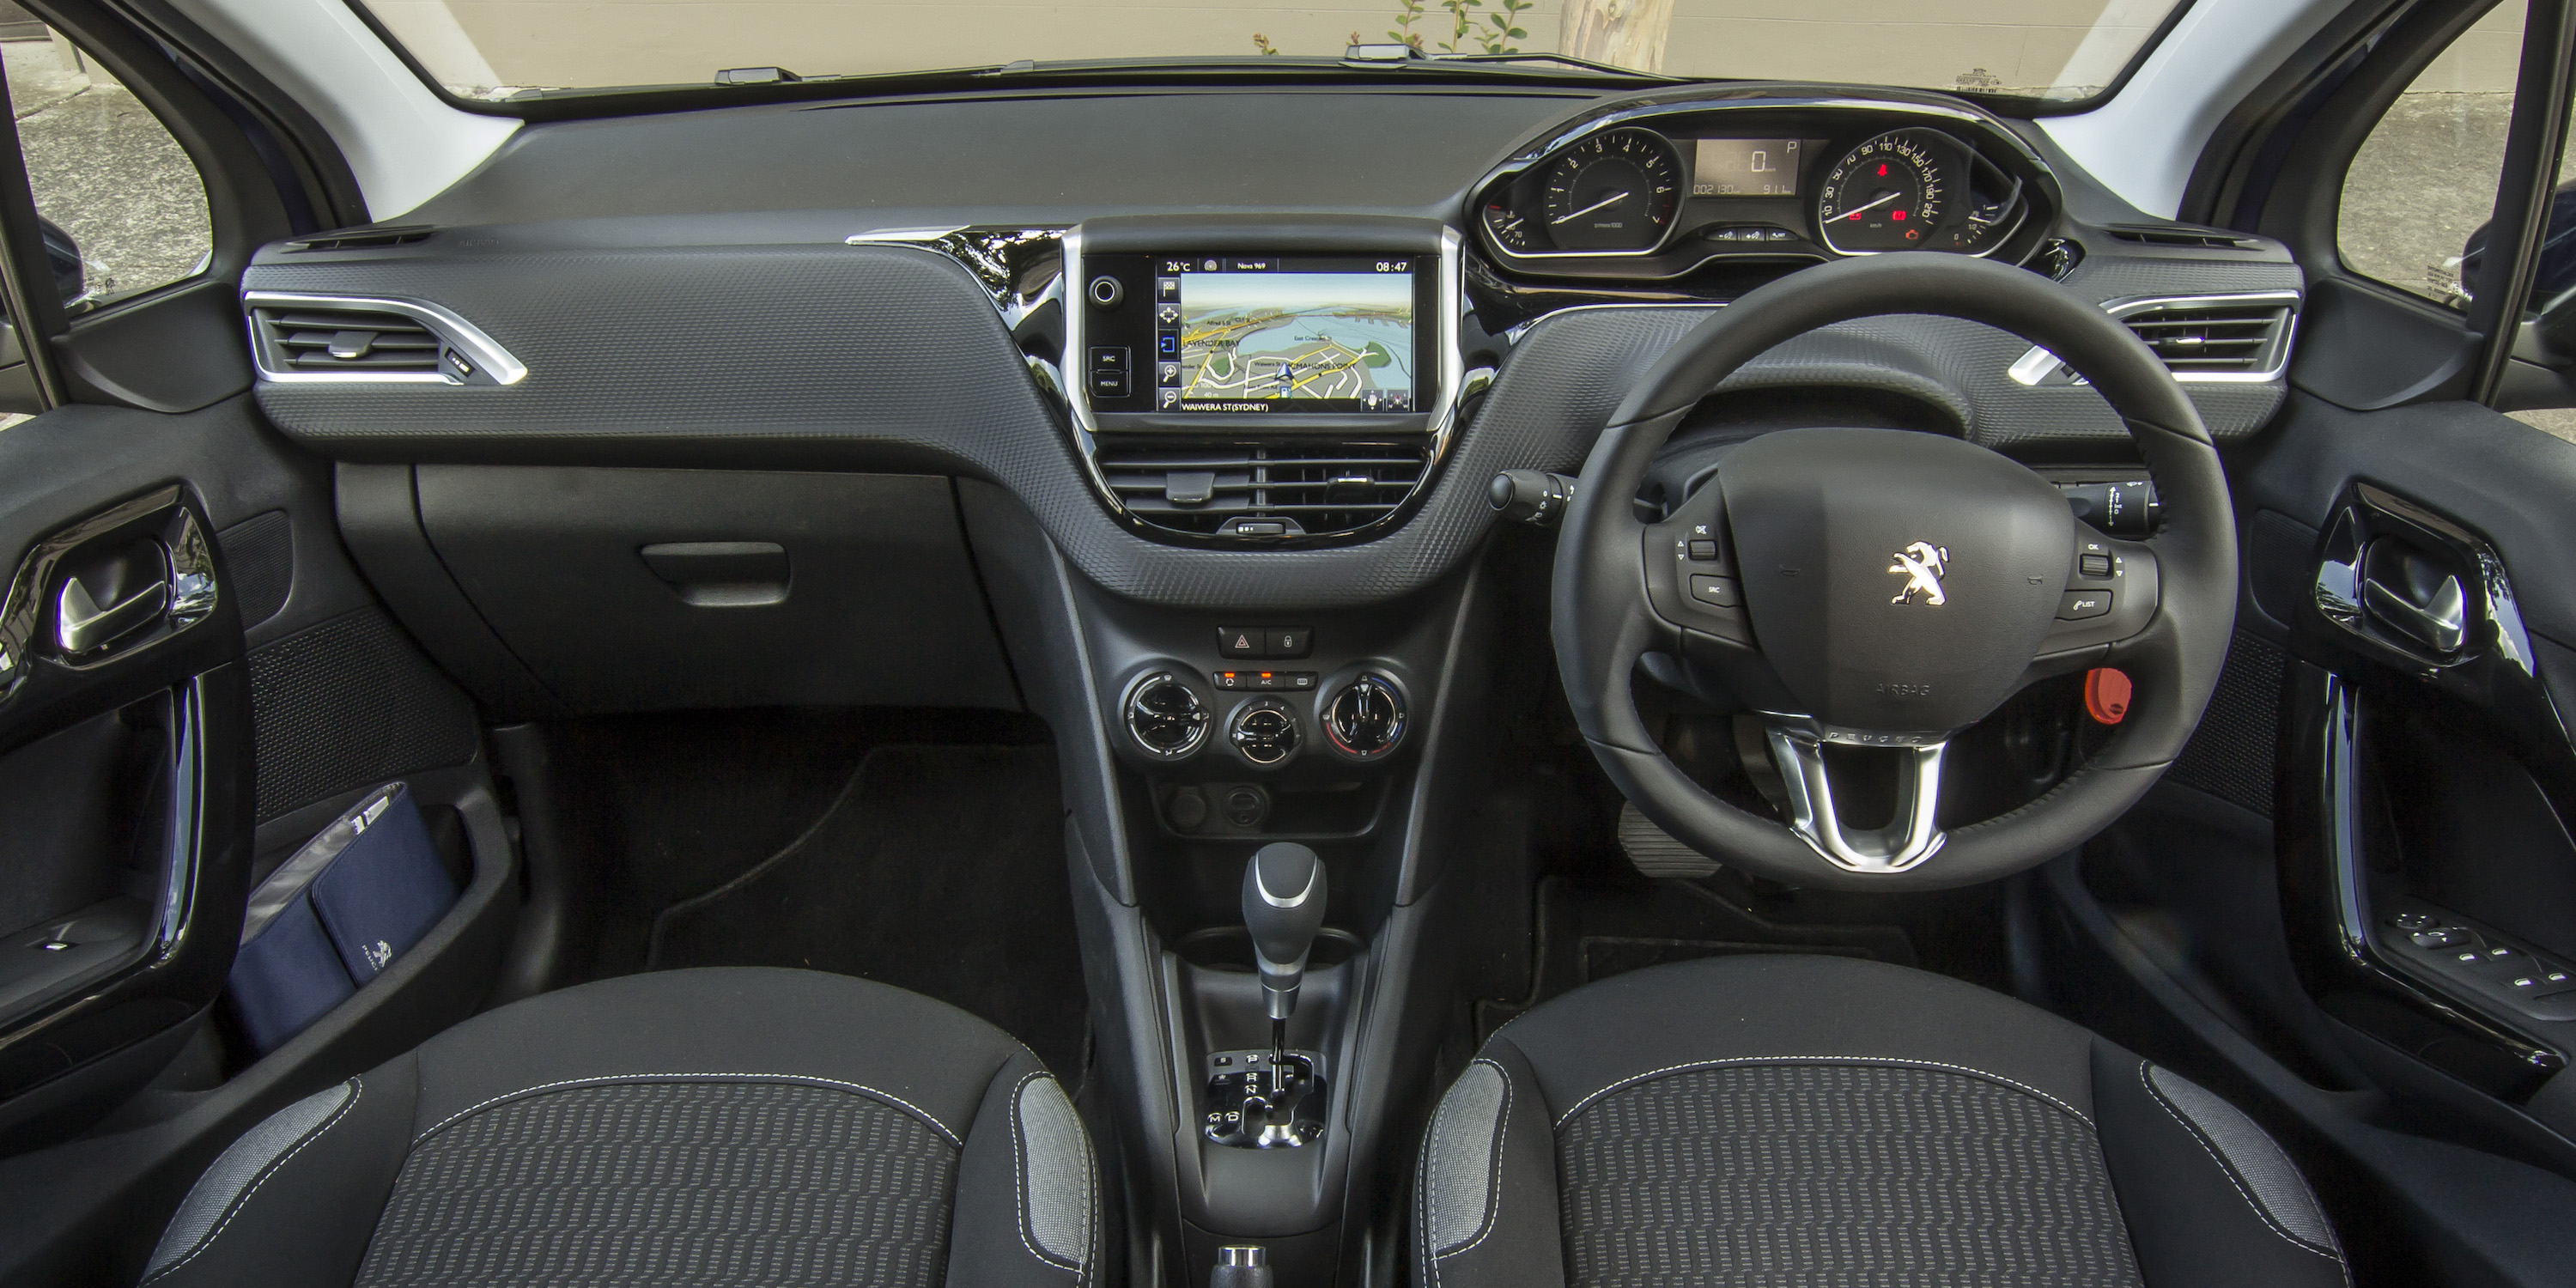 2016 Peugeot 208 Active Interior Preview (Photo 7 of 16)